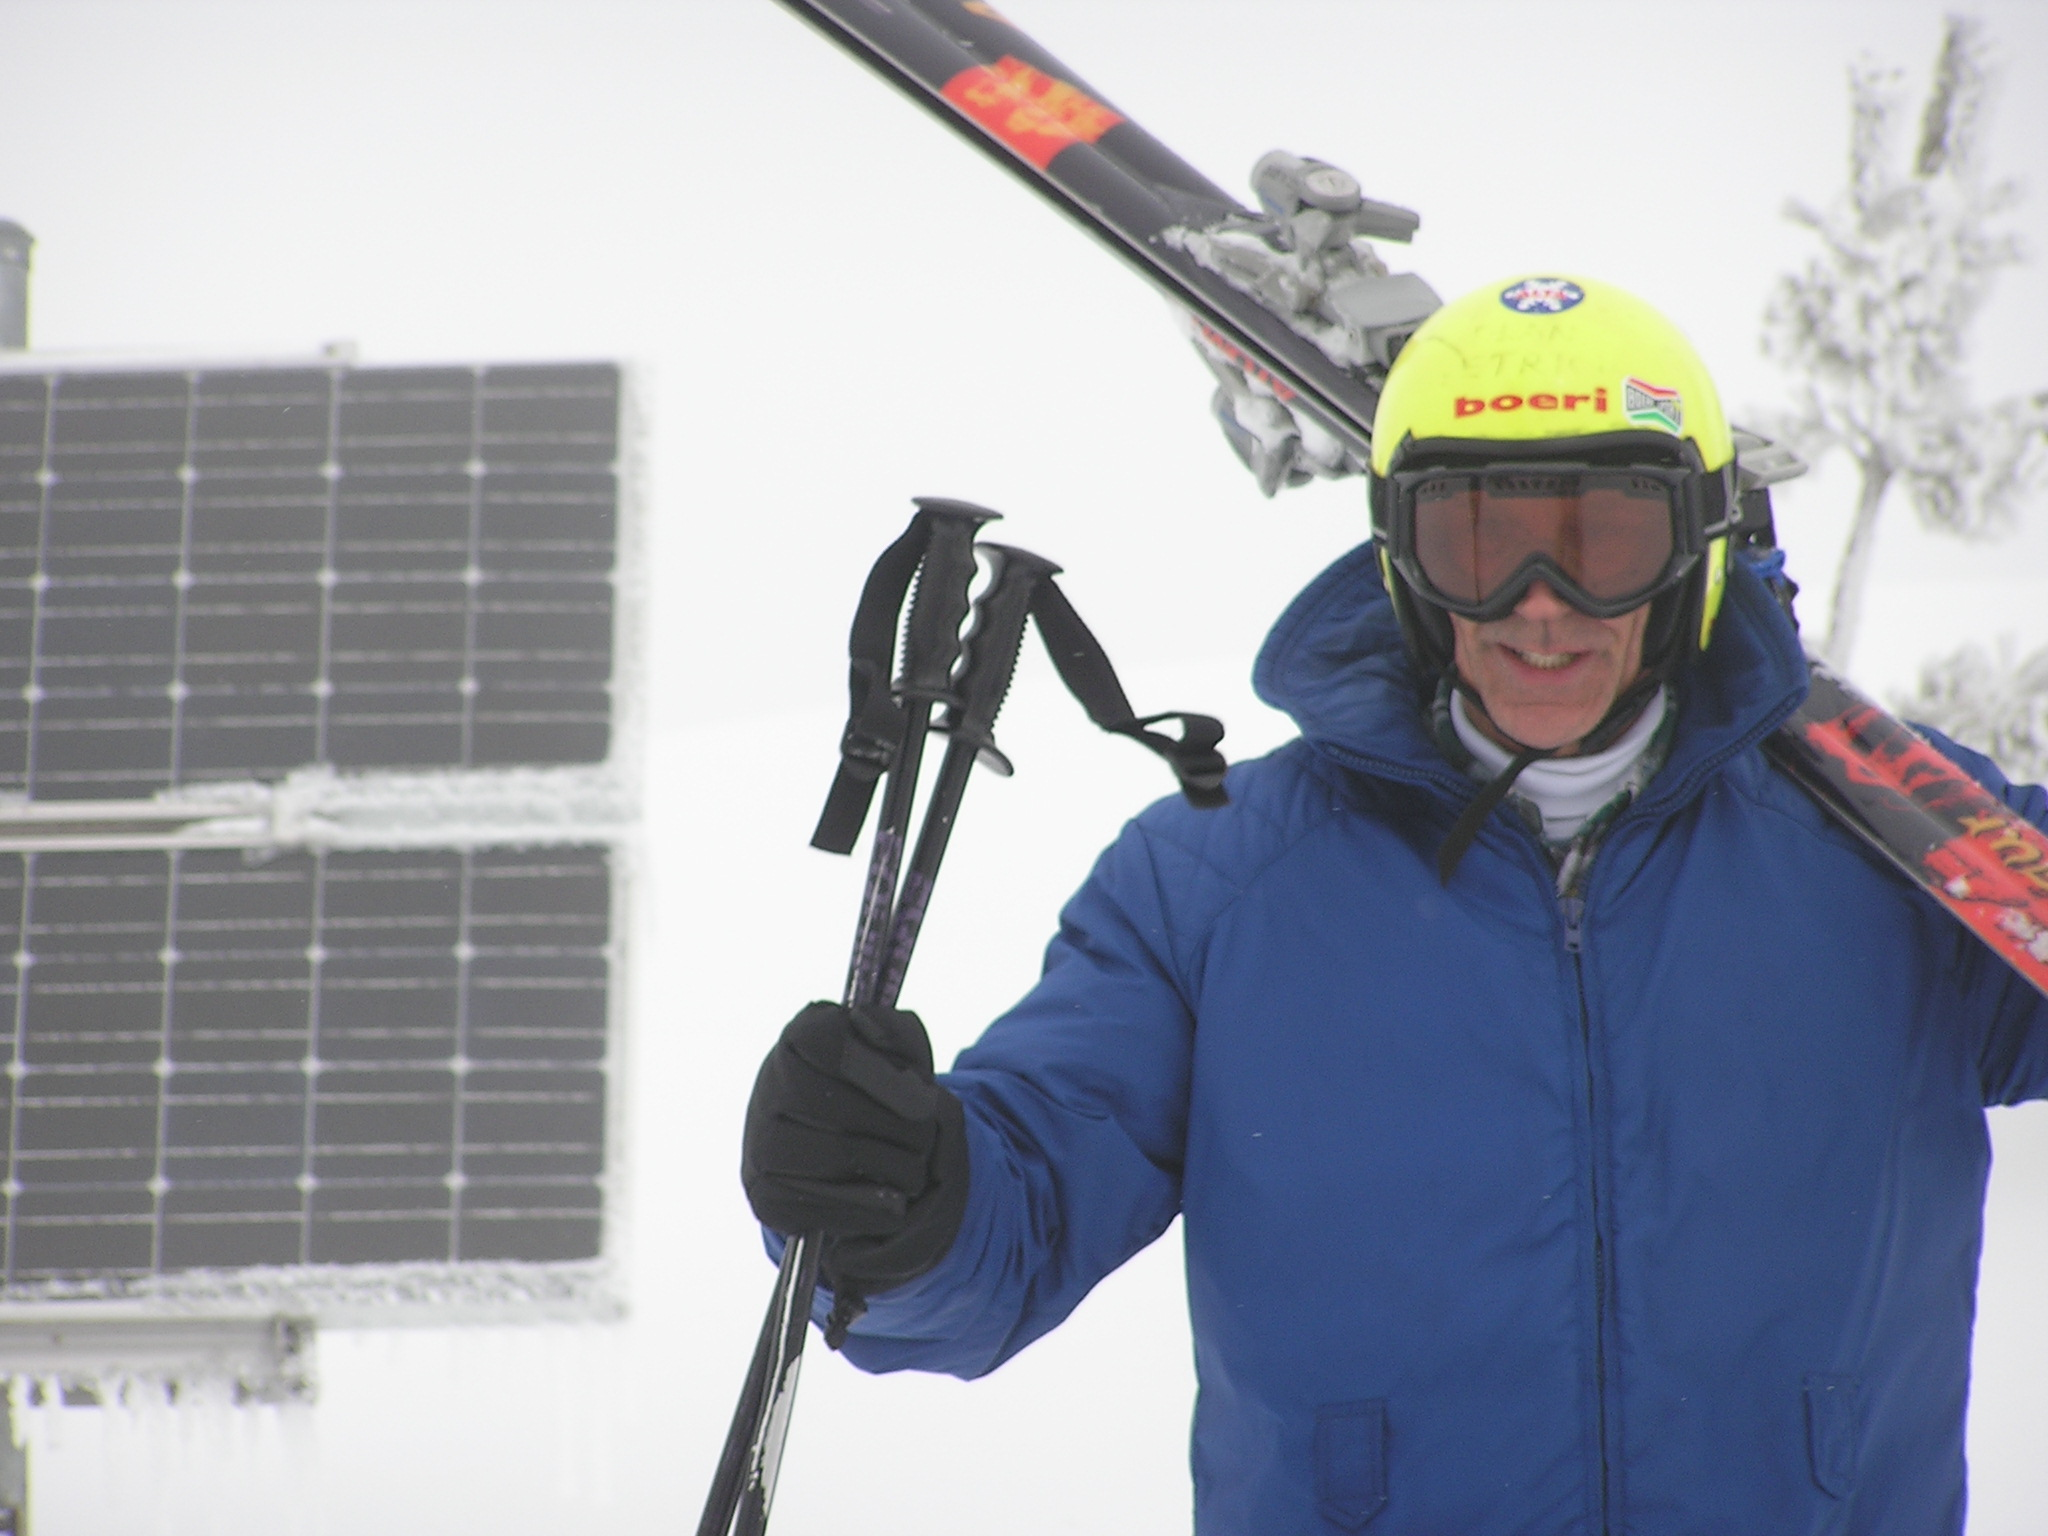 Dean skiing by solar panels